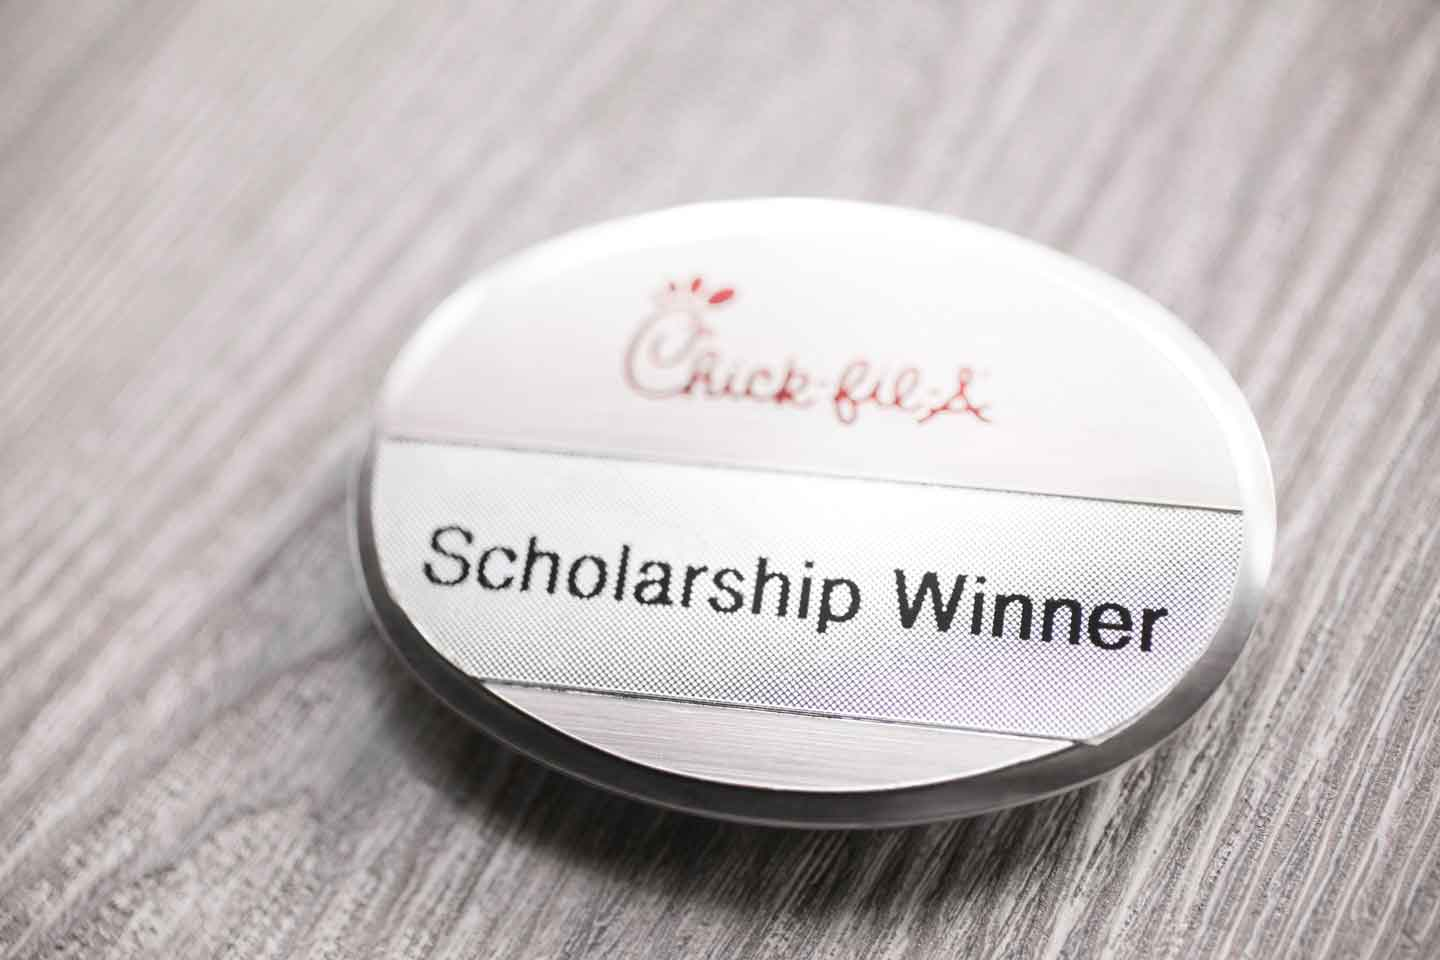 10 Things to Know about Chick-fil-A\'s Scholarship | Chick-fil-A